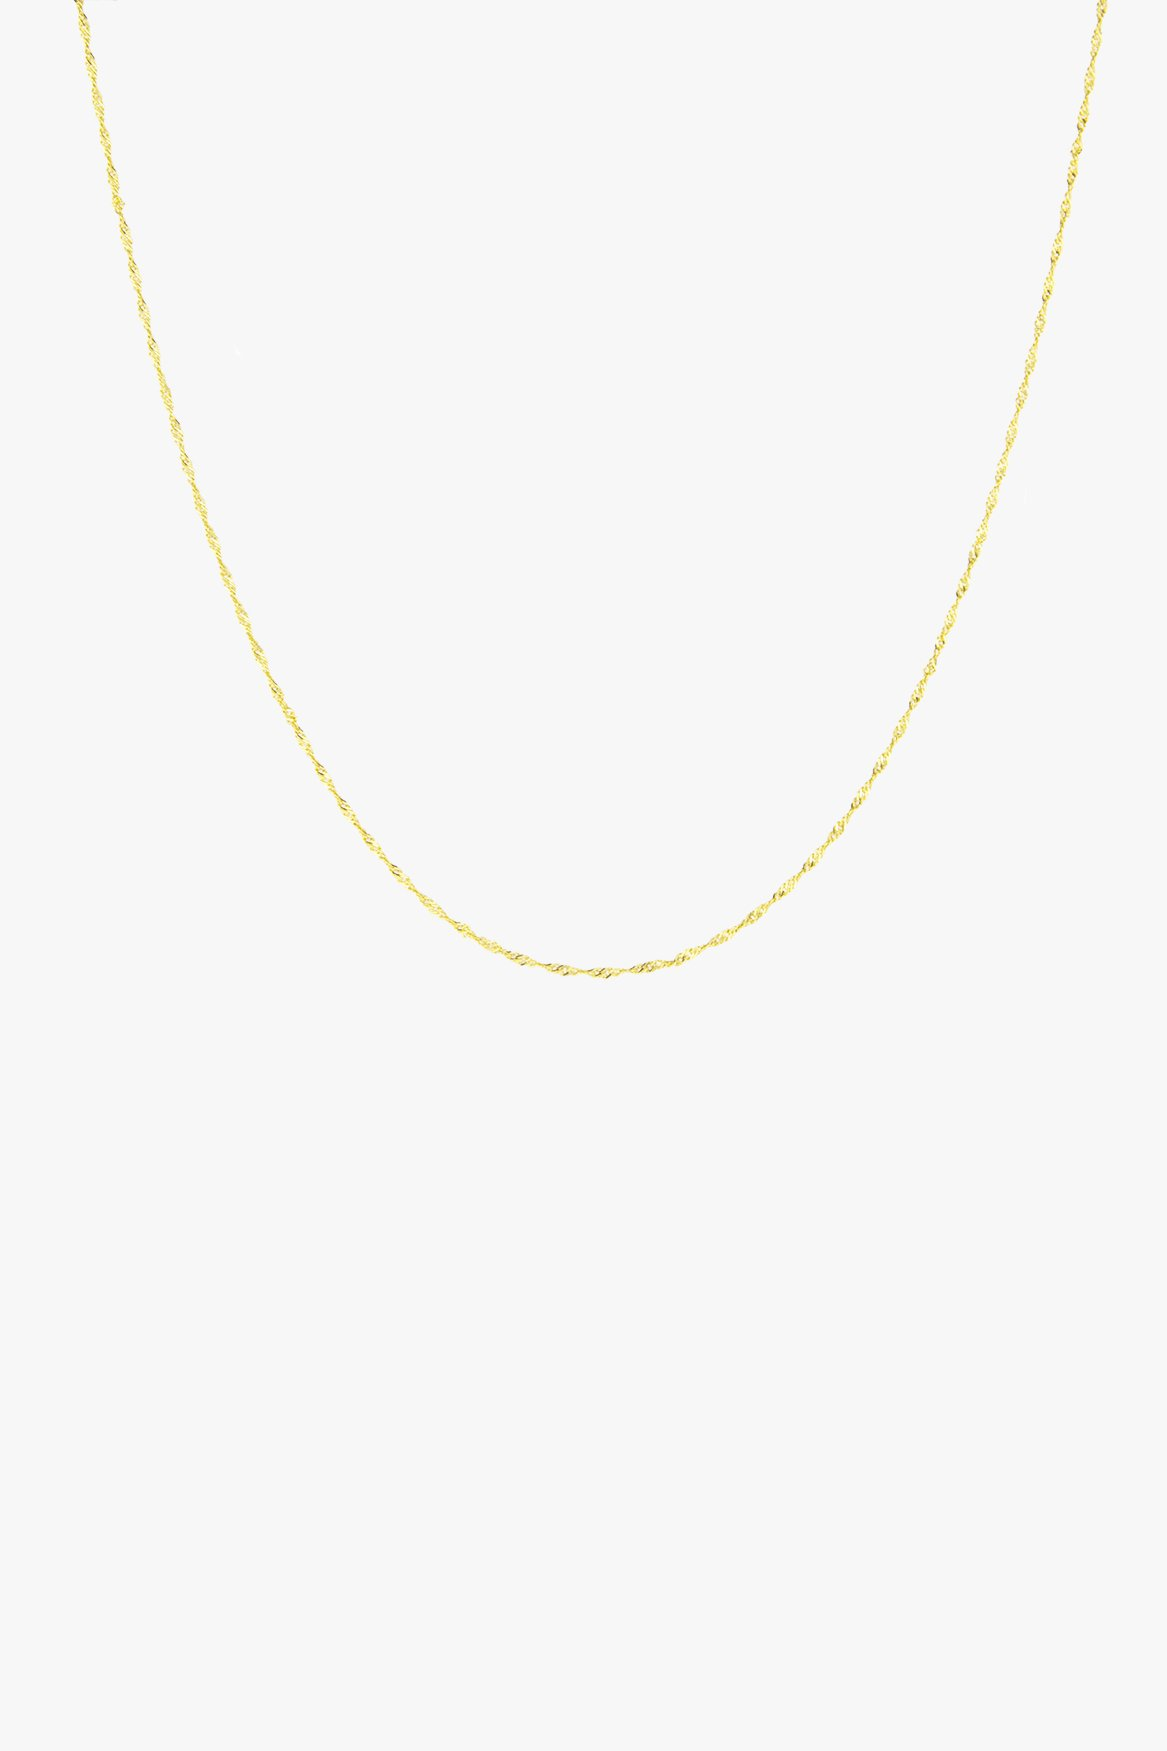 wildthings collectables - Choker gold 36cm